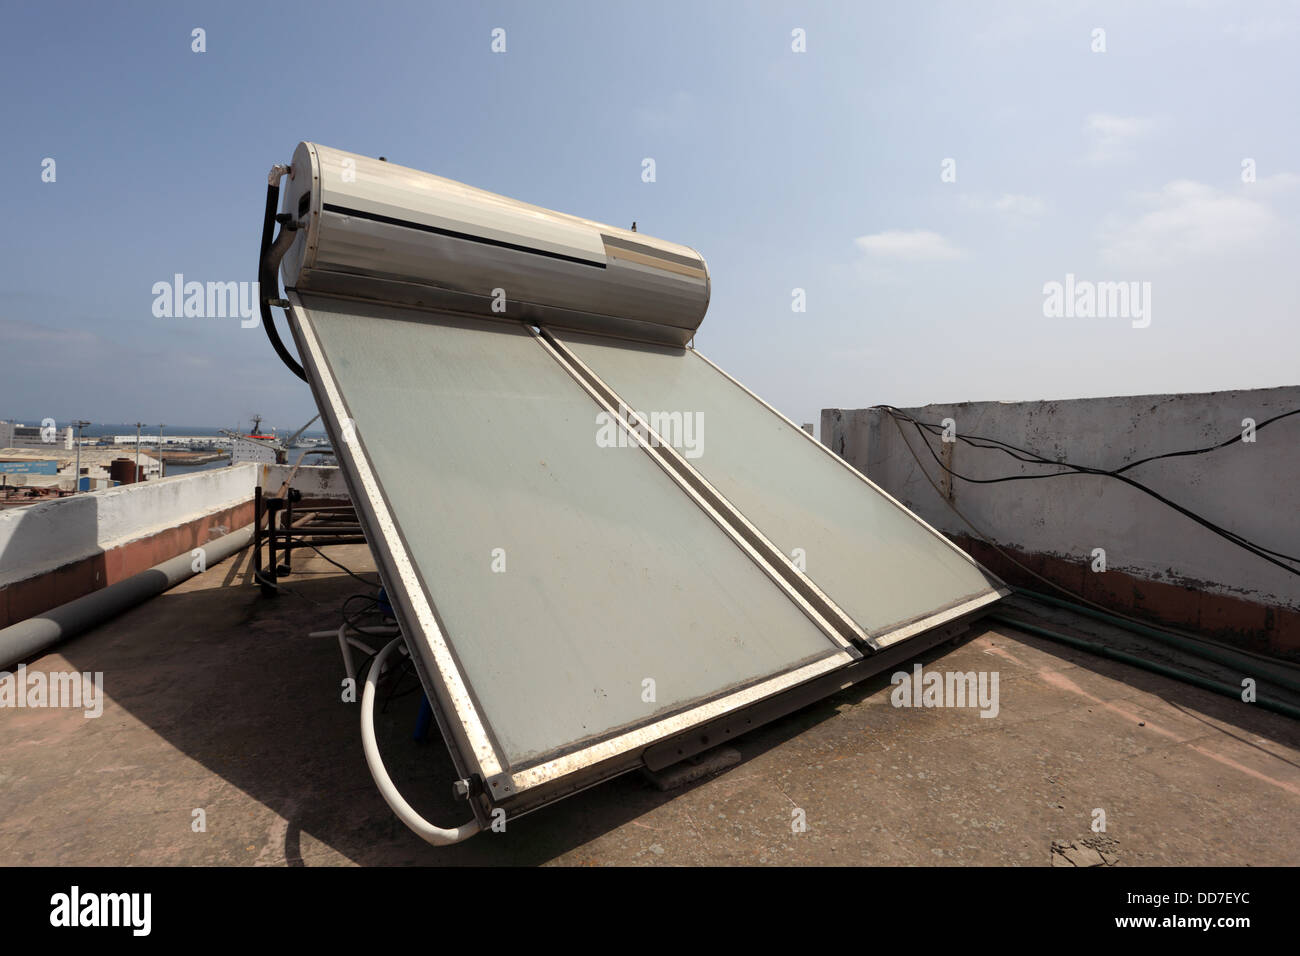 Solar water heater on the roof in Casablanca, Morocco - Stock Image